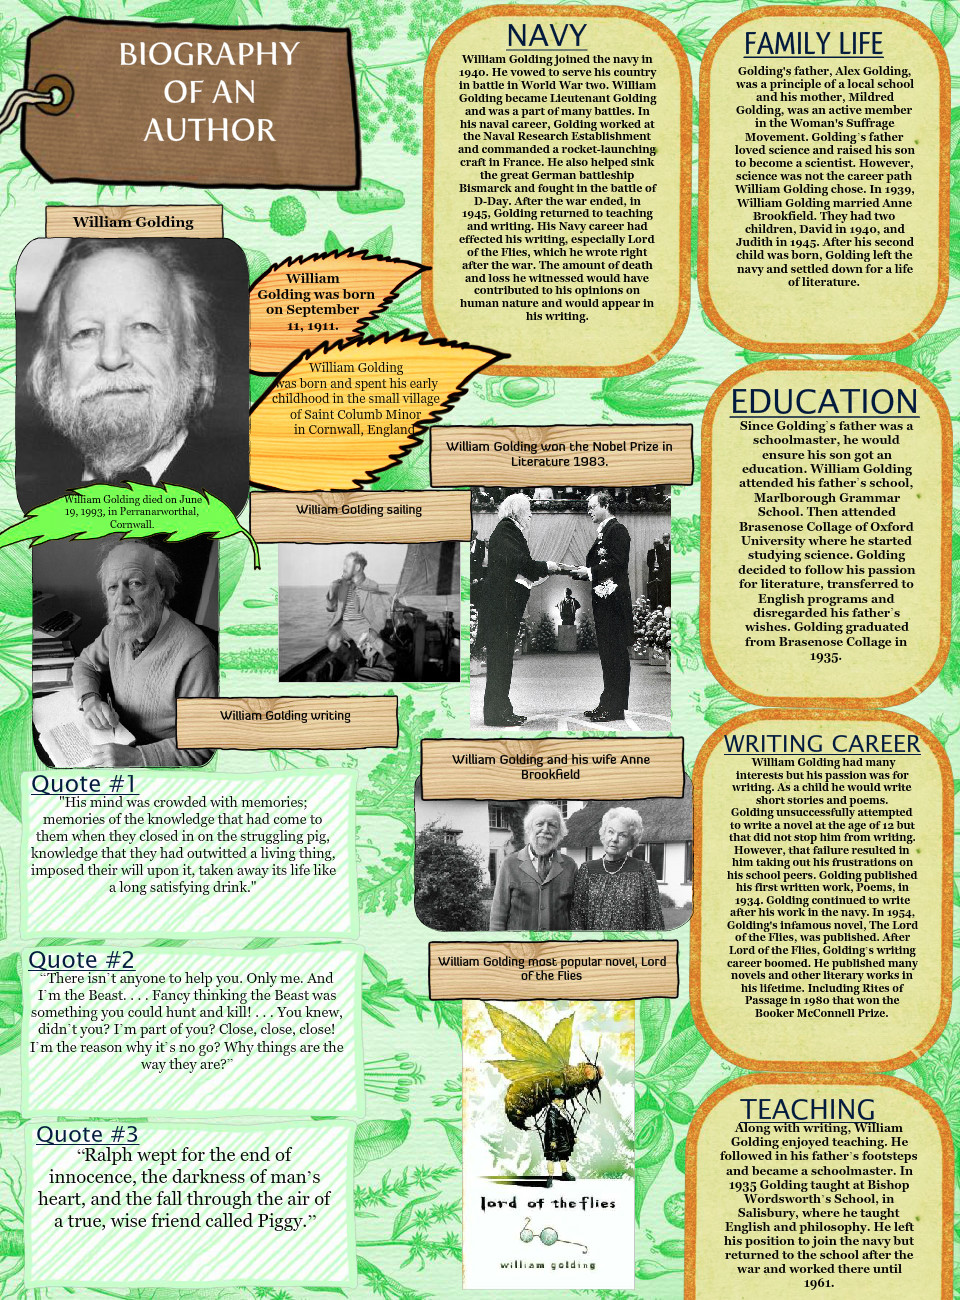 Biography Of William Golding